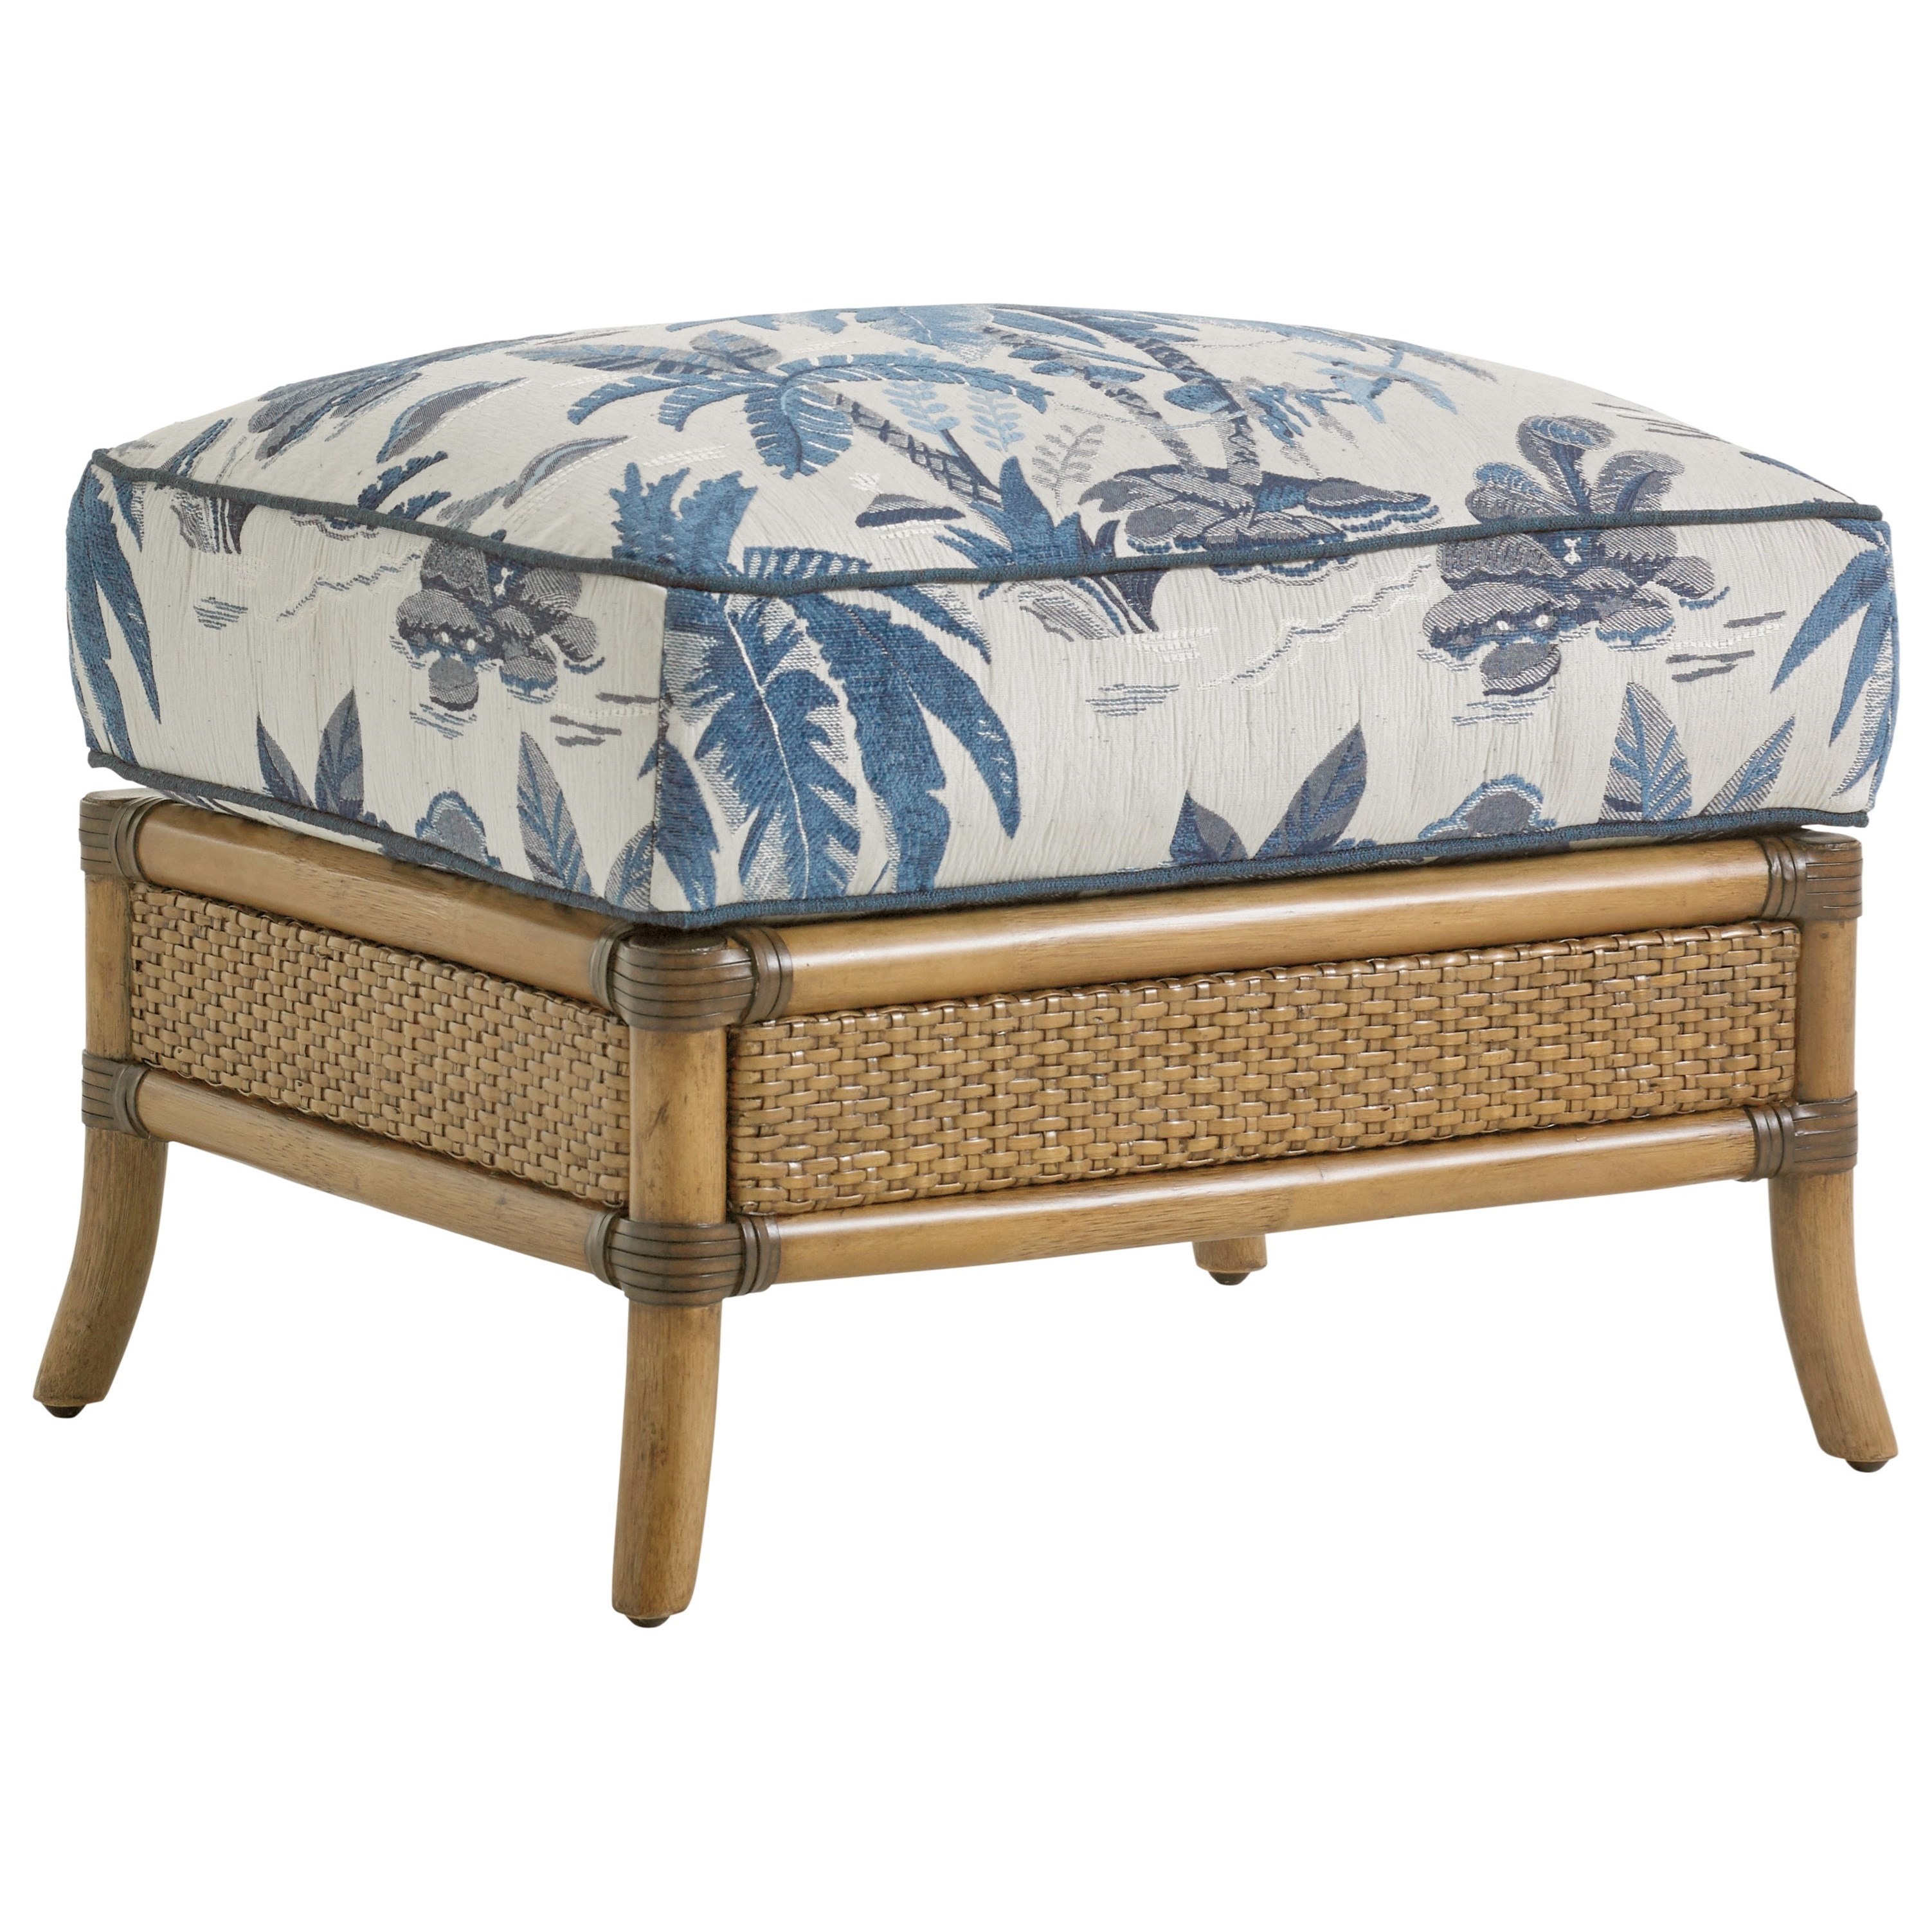 Twin Palms Seagate Ottoman by Tommy Bahama Home at Baer's Furniture